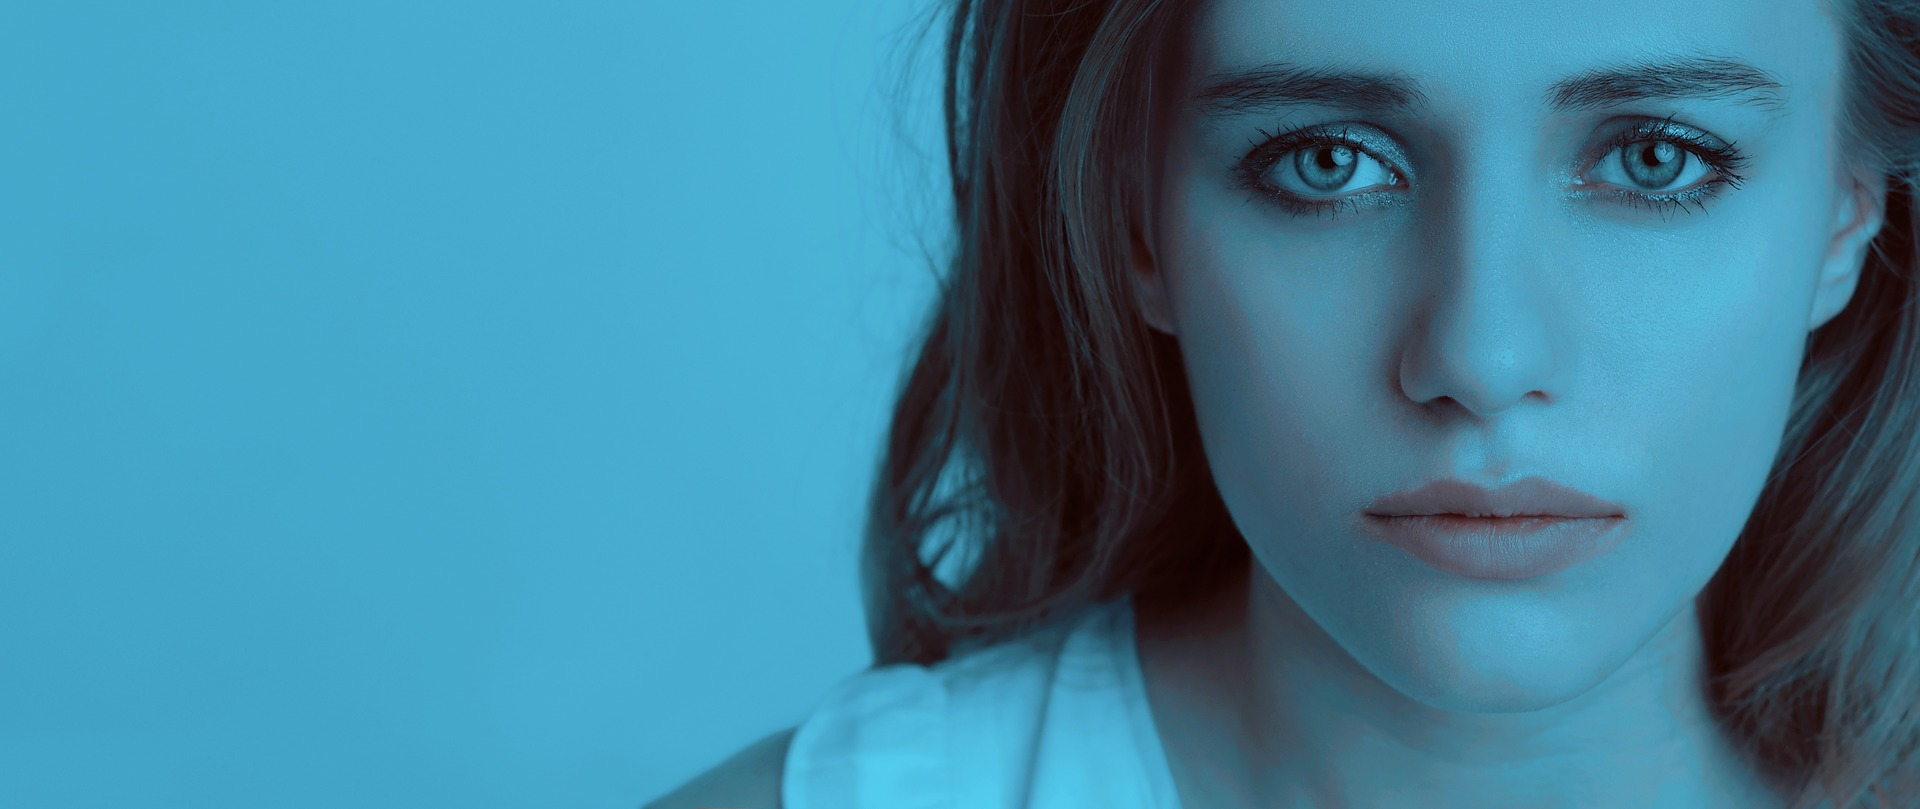 woman looking sad with blue tint